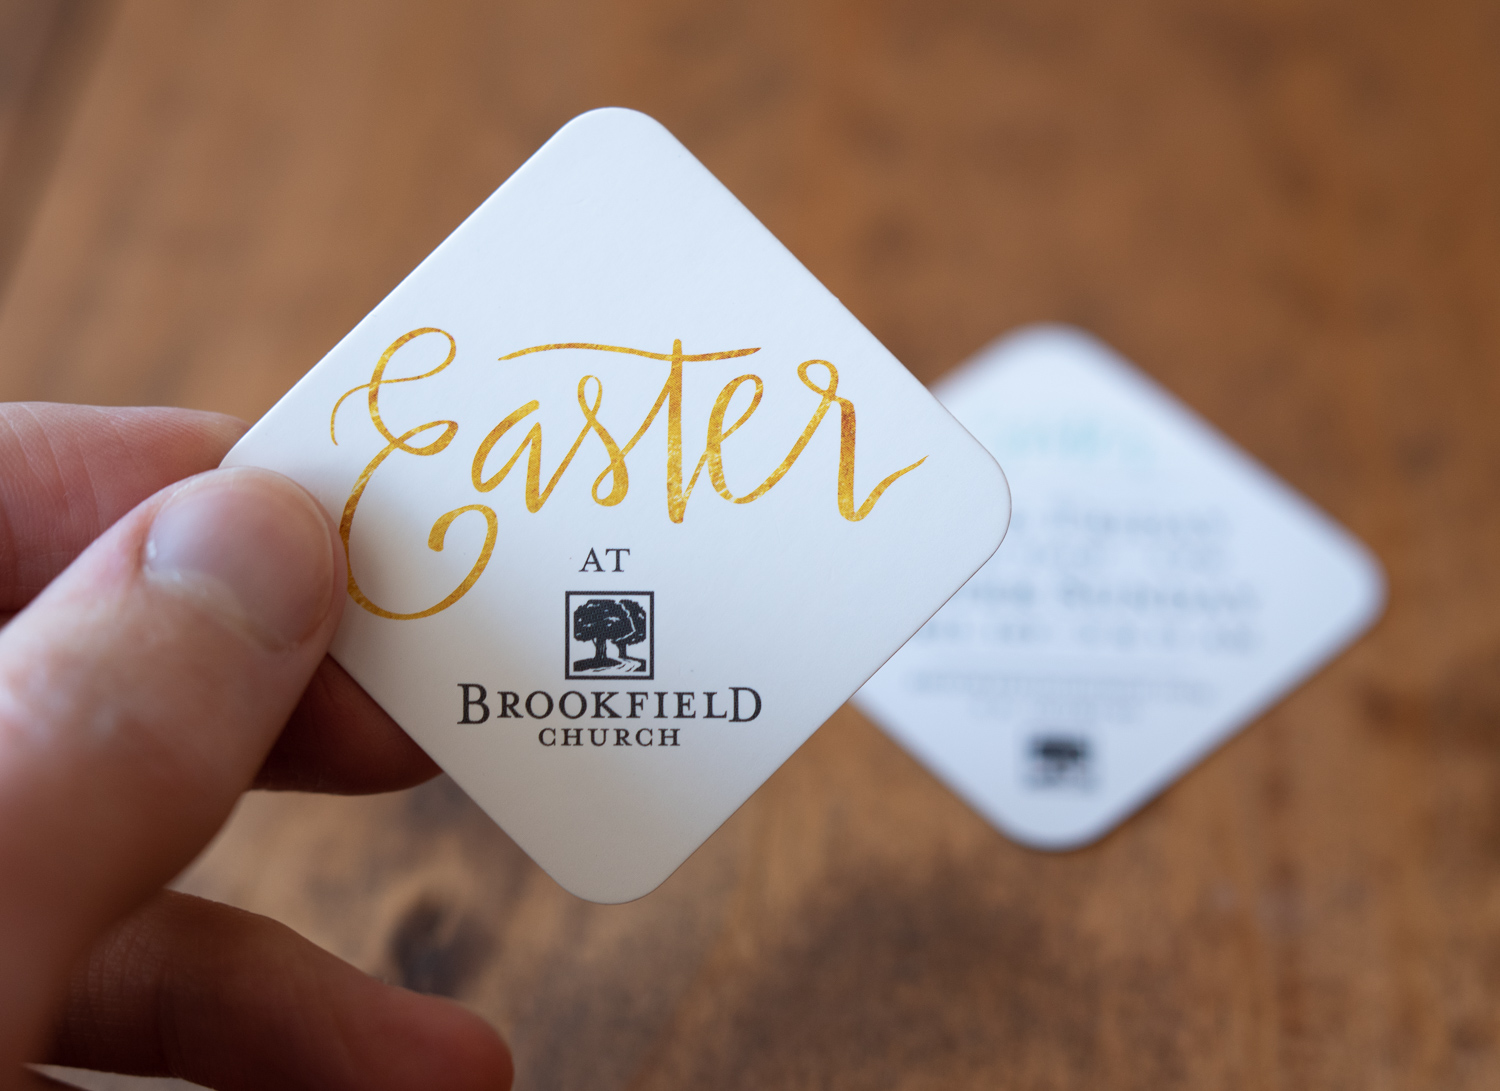 Invitation cards for Easter services at Brookfield Church in Athens, OH.